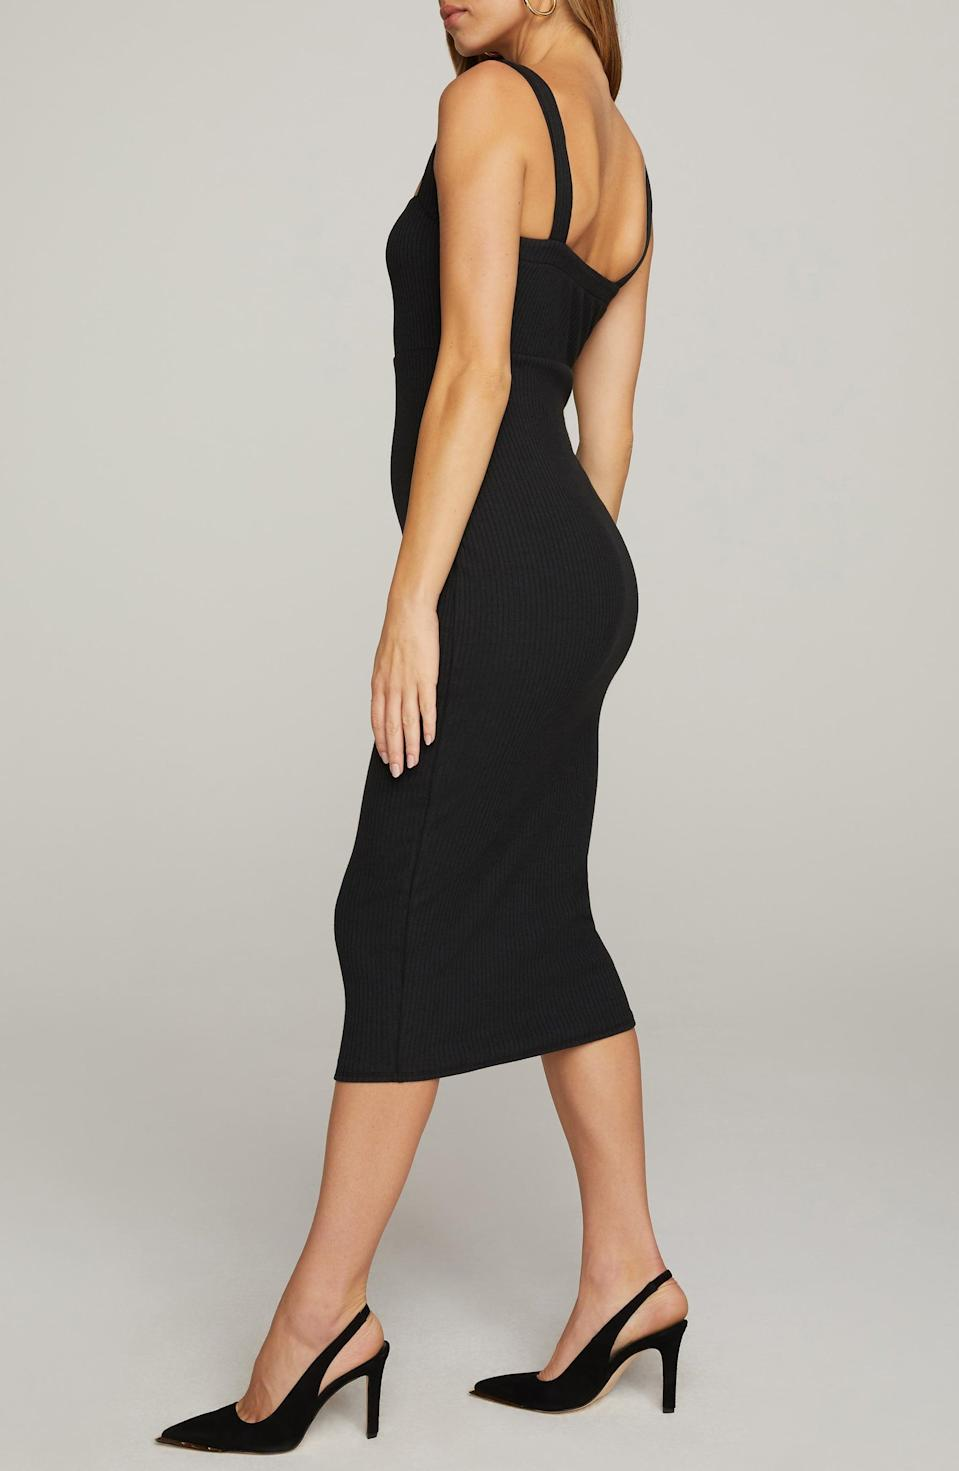 <p>This <span>Good American Ribbed Tank Dress</span> ($99) makes a sleek, modern and sexy statement in your closet.</p>